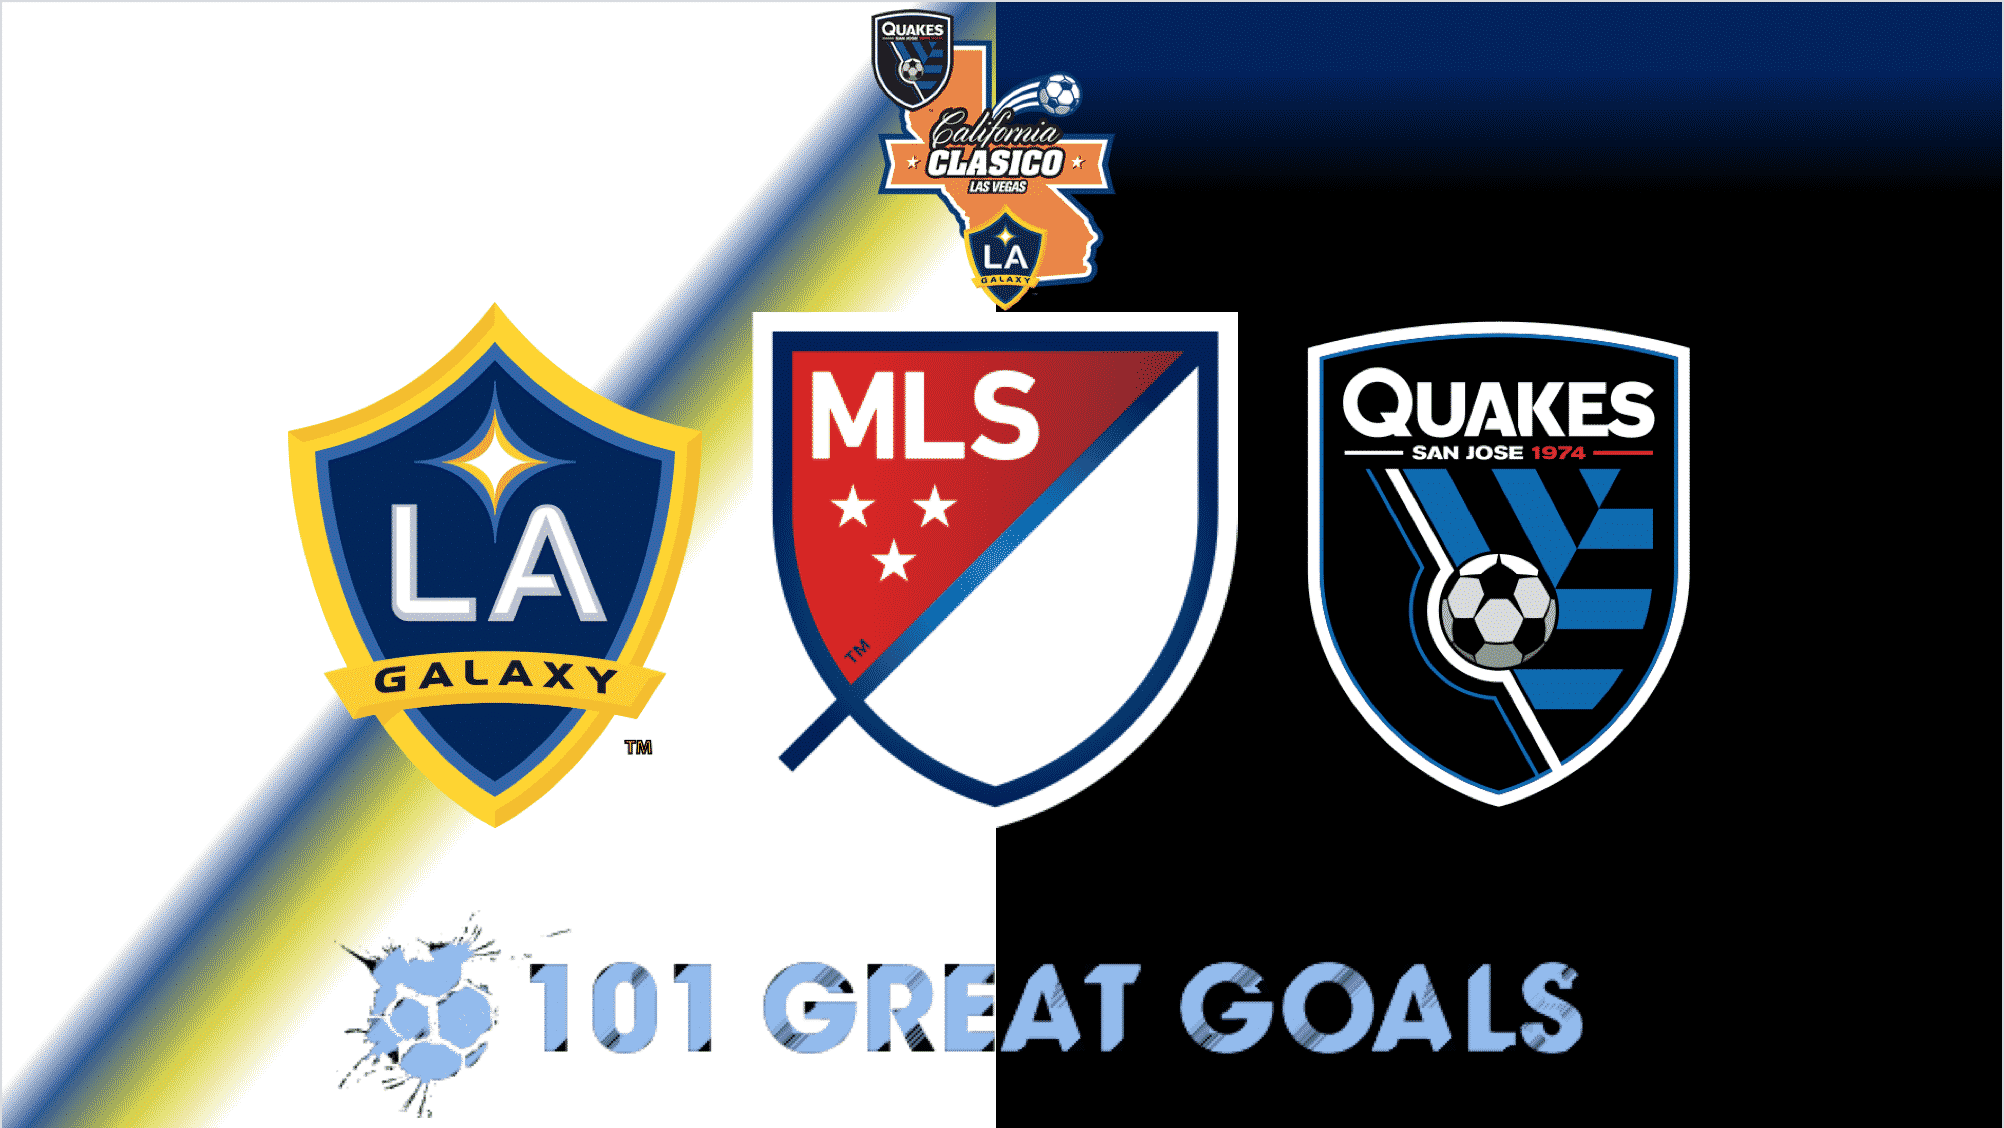 LA Galaxy vs San Jose Earthquakes live streaming